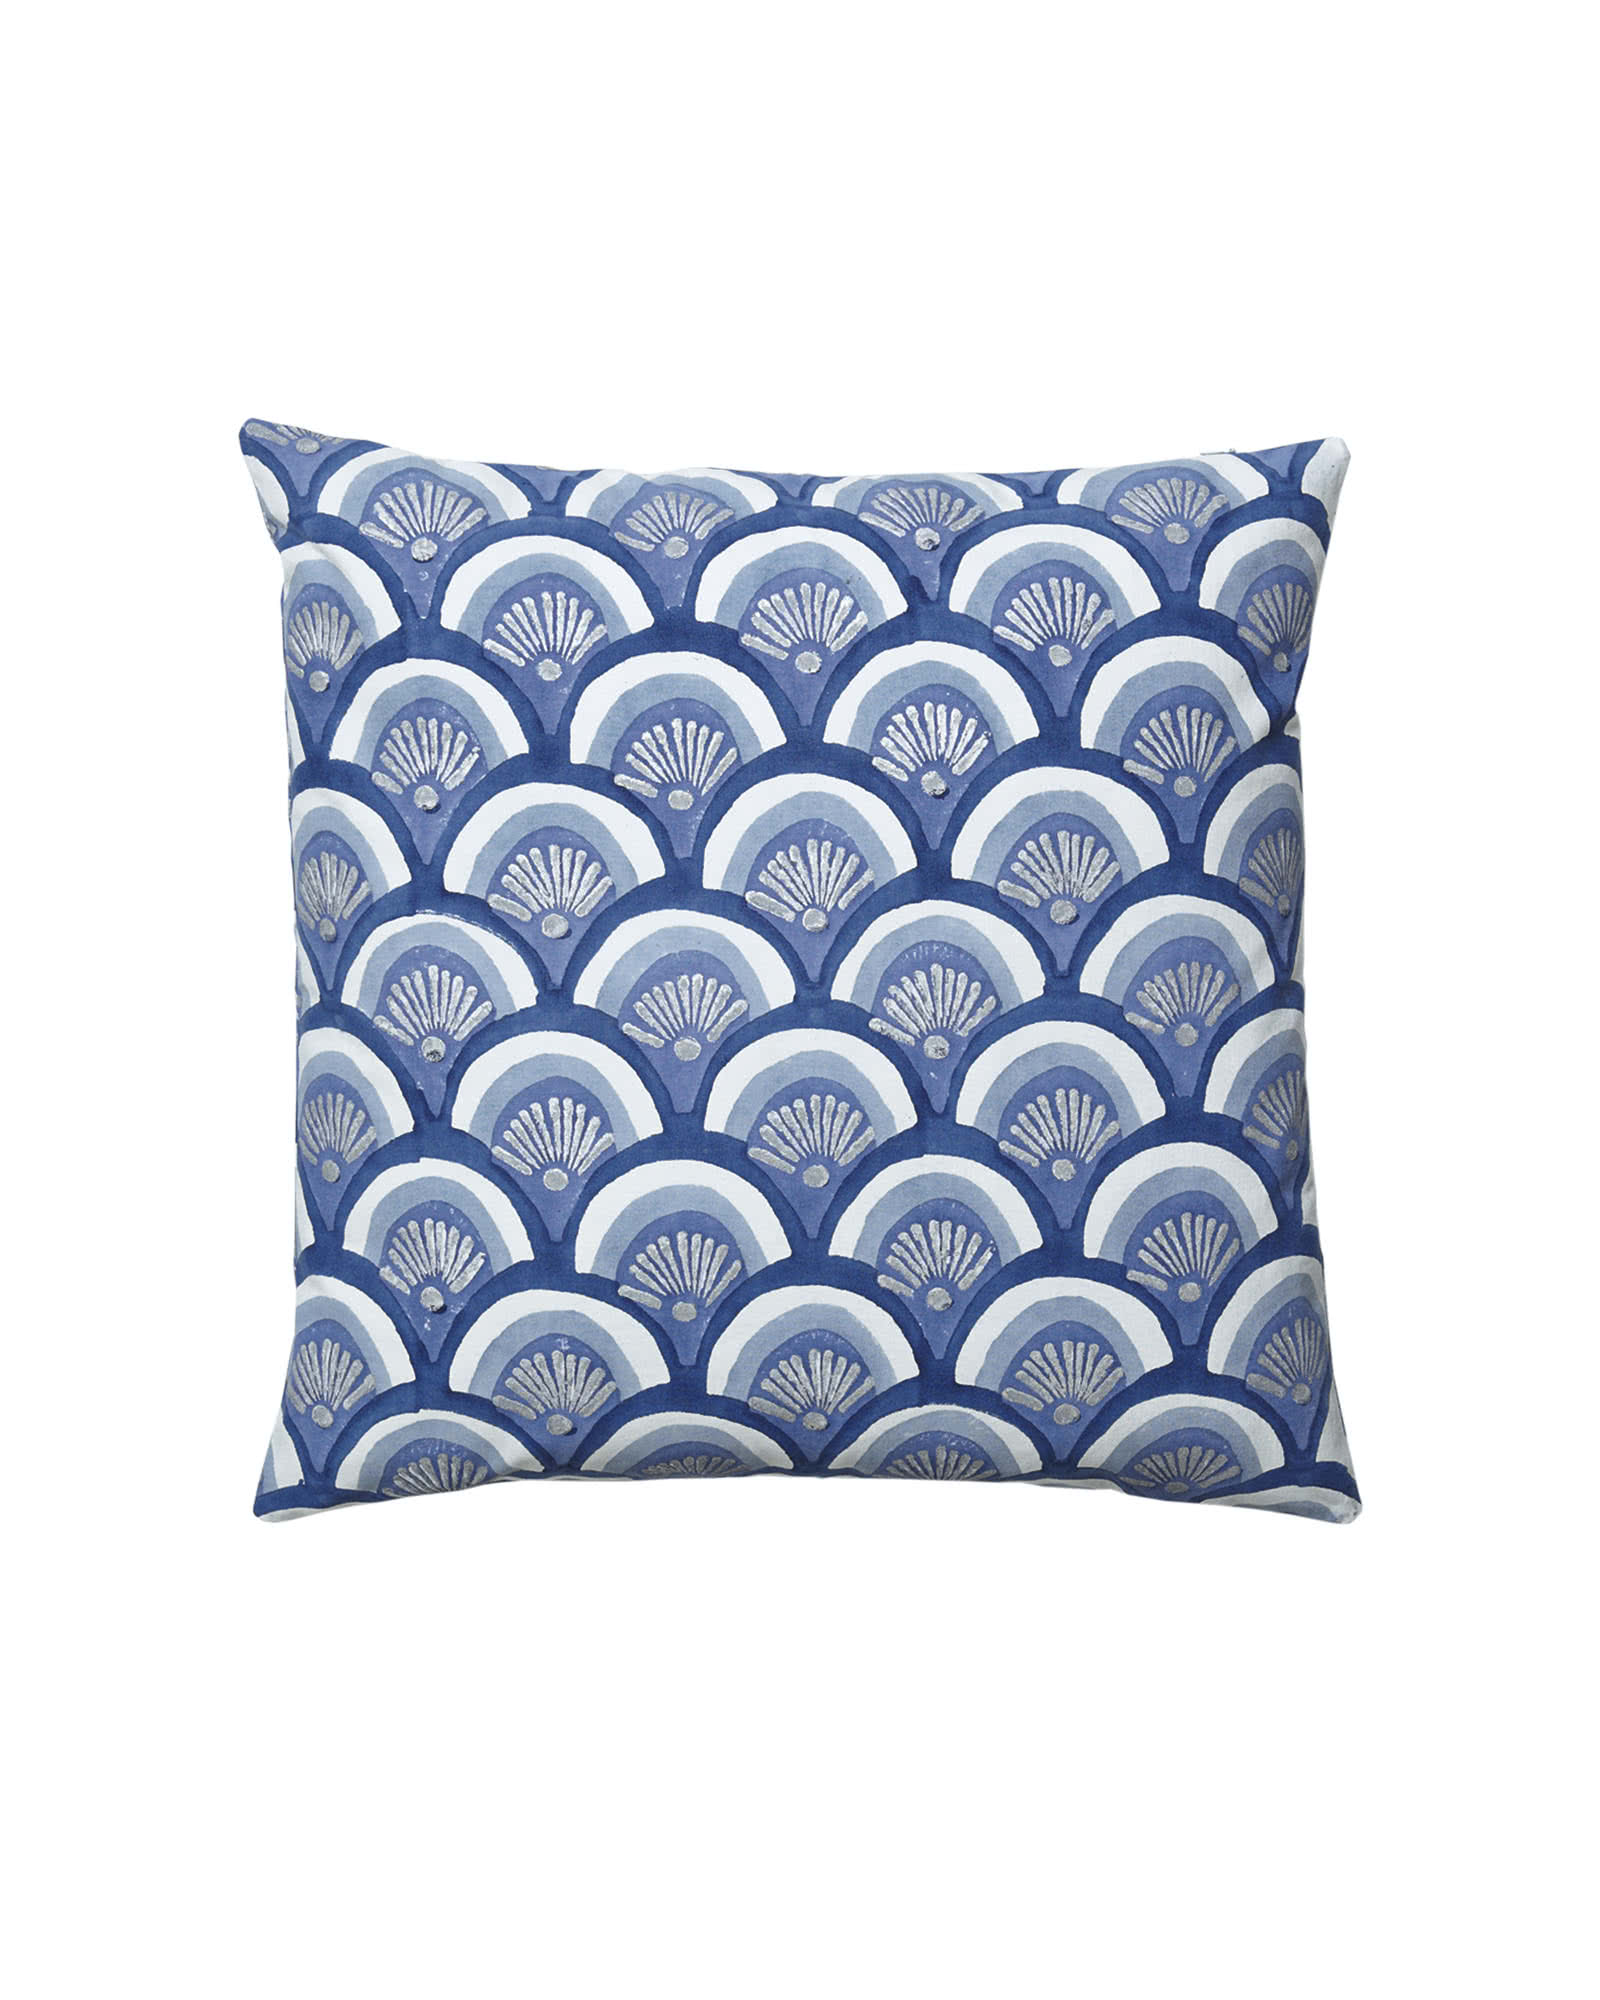 Kyoto Pillow Covers,